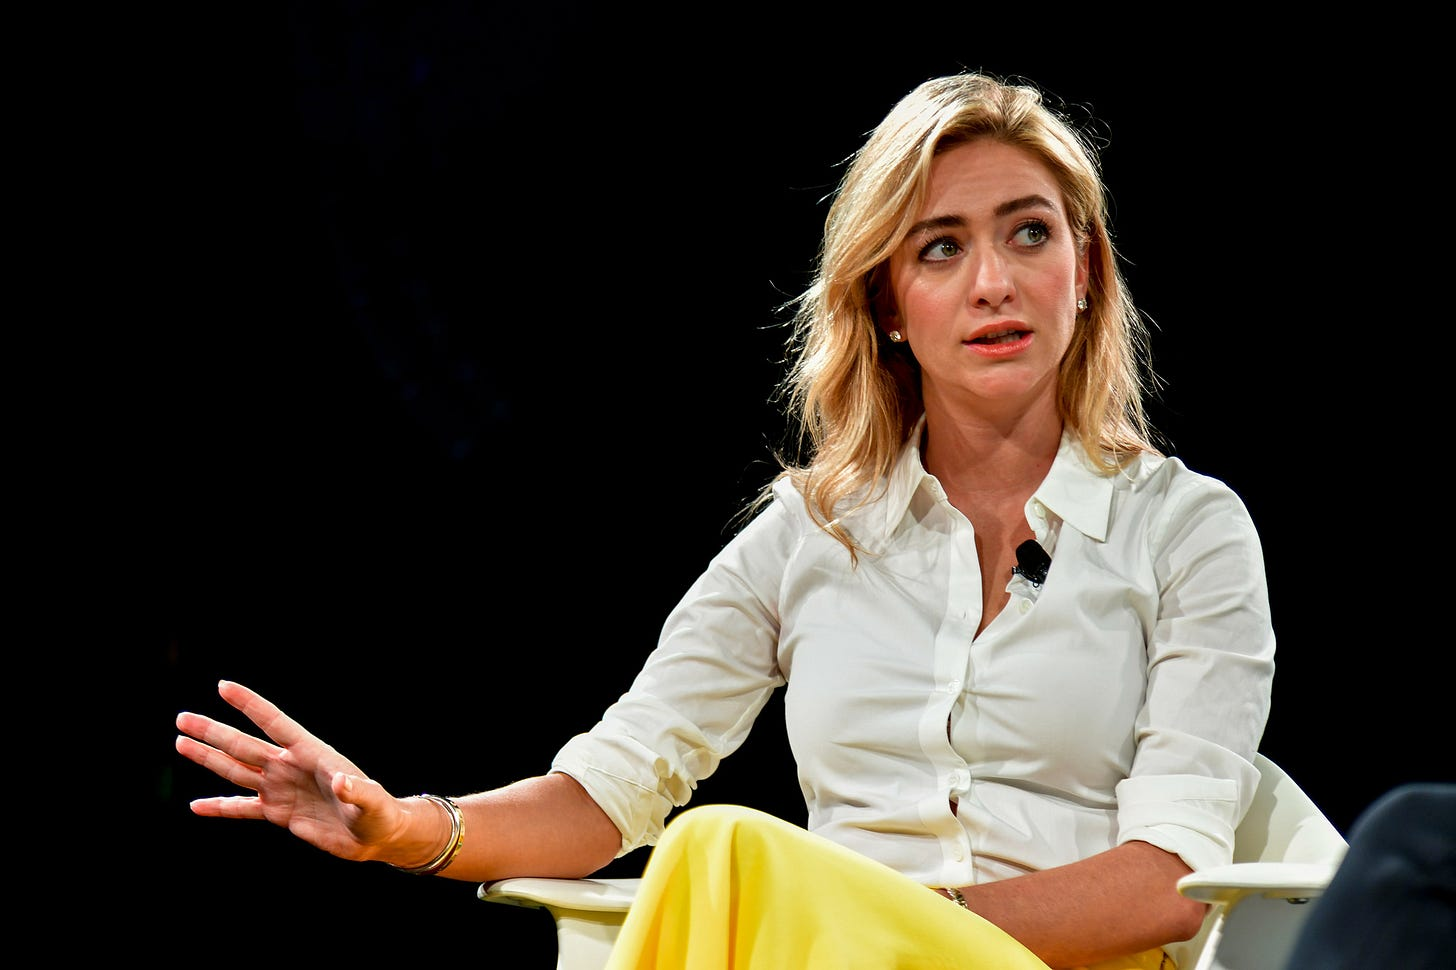 Tinder Sues Bumble App For Swiping Its Secrets - Instanthub